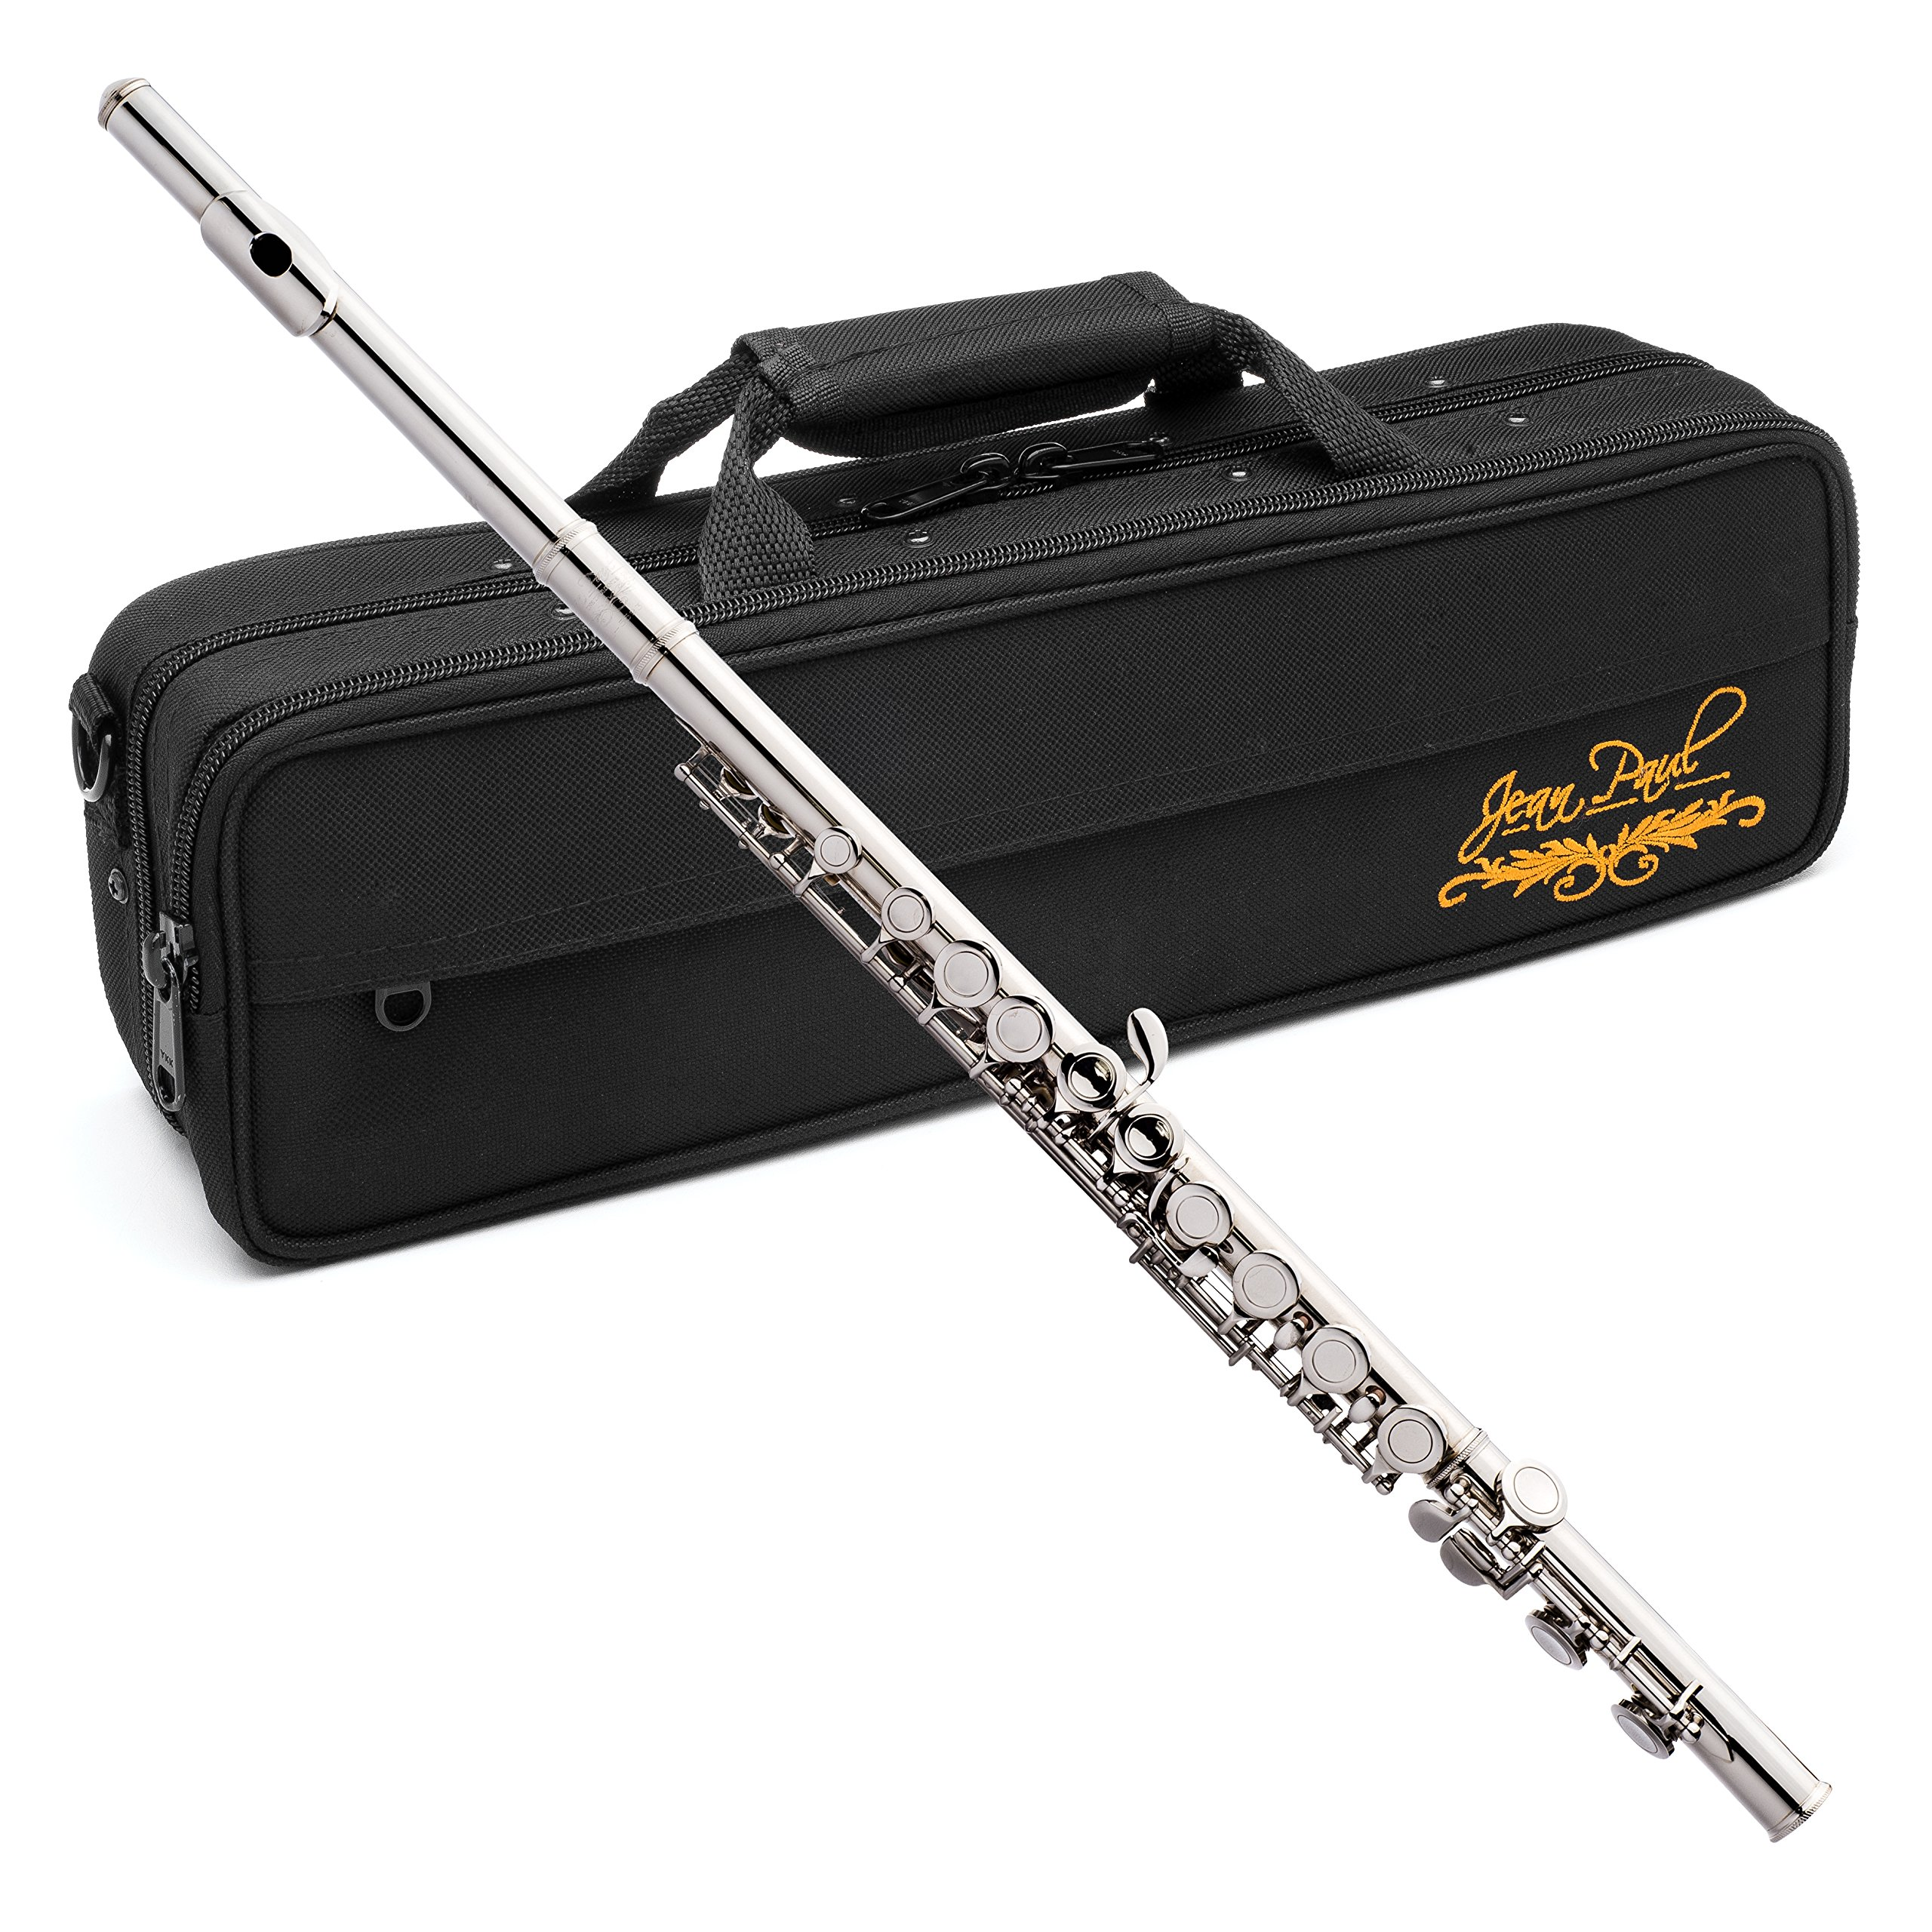 Jean Paul USA Silver Plated Flute (FL-220) by Jean Paul USA